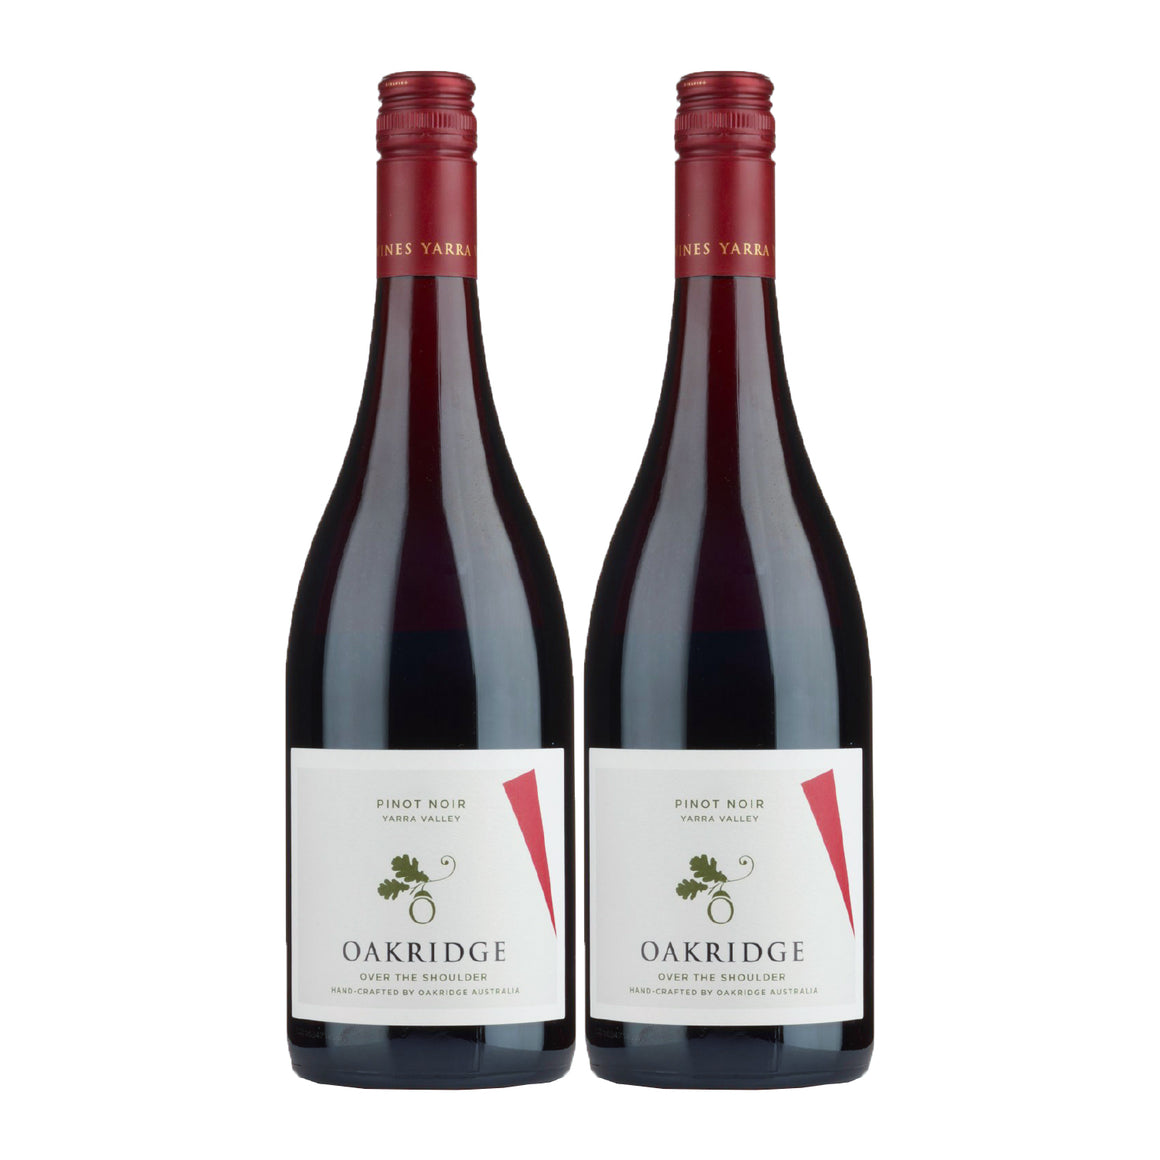 OAKRIDGE OVER THE SHOULDER PINOT NOIR 2019 (2 TO GO)